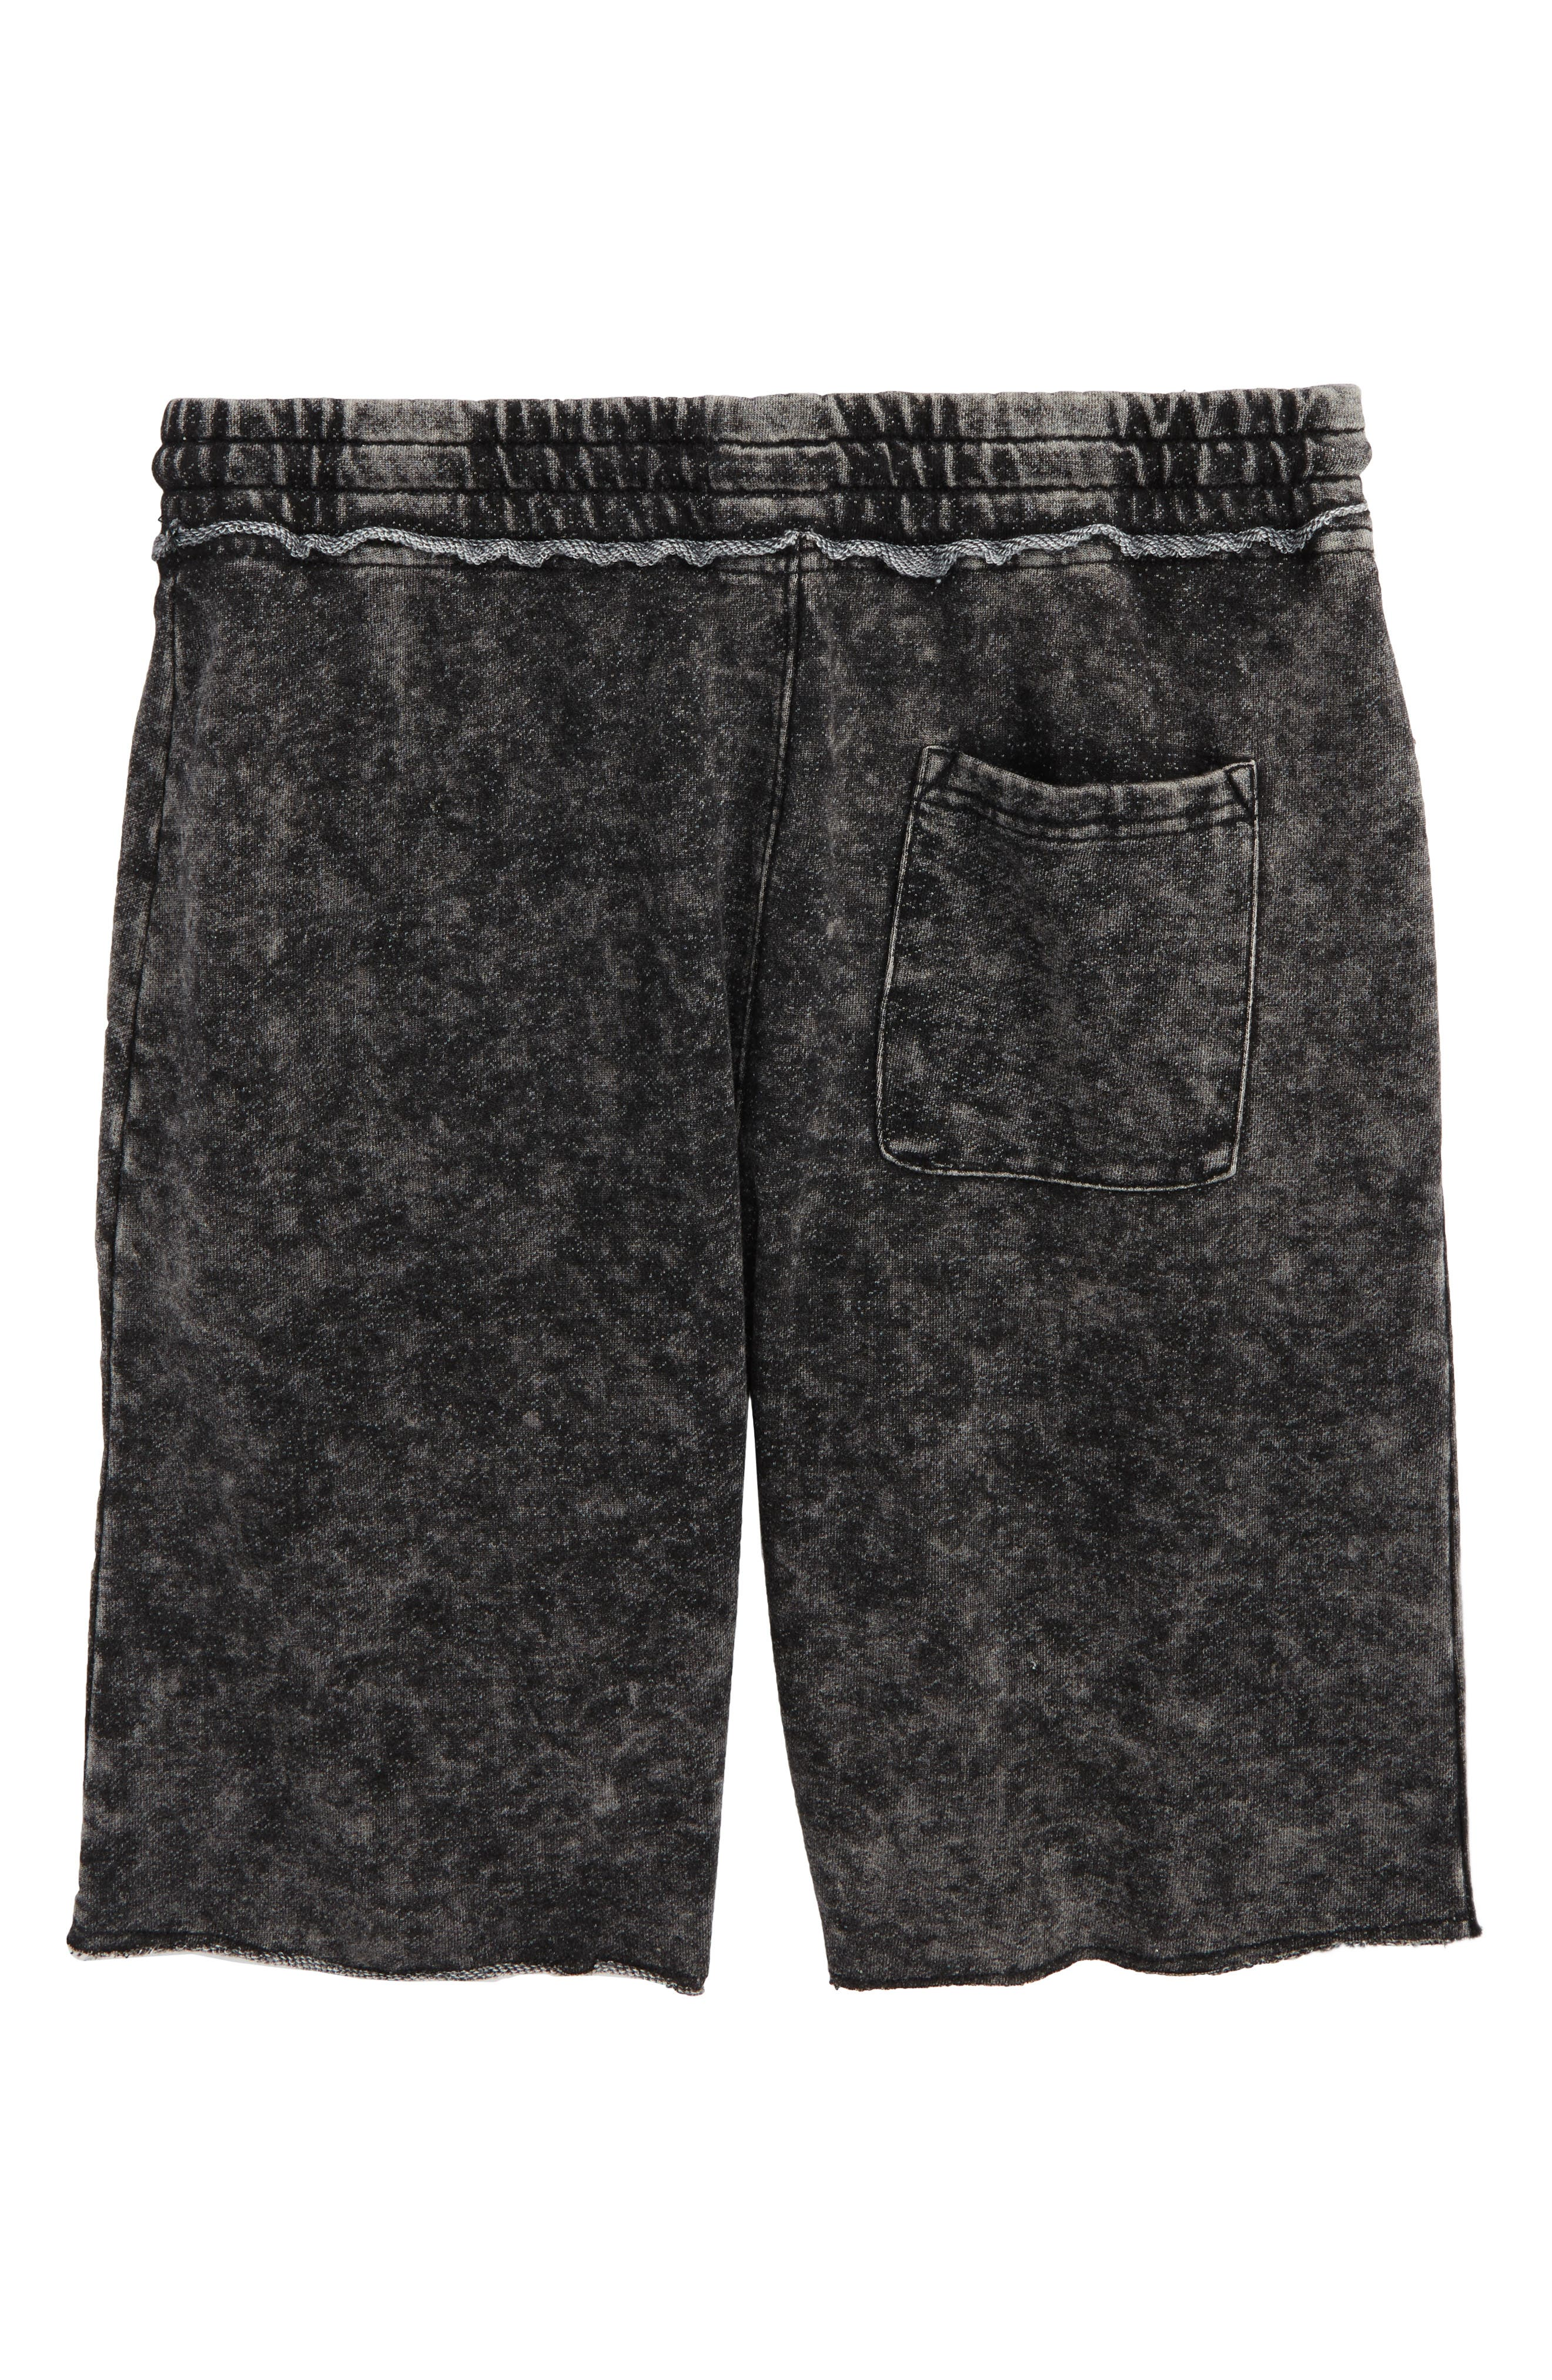 Raw Edge Knit Shorts,                             Alternate thumbnail 2, color,                             001